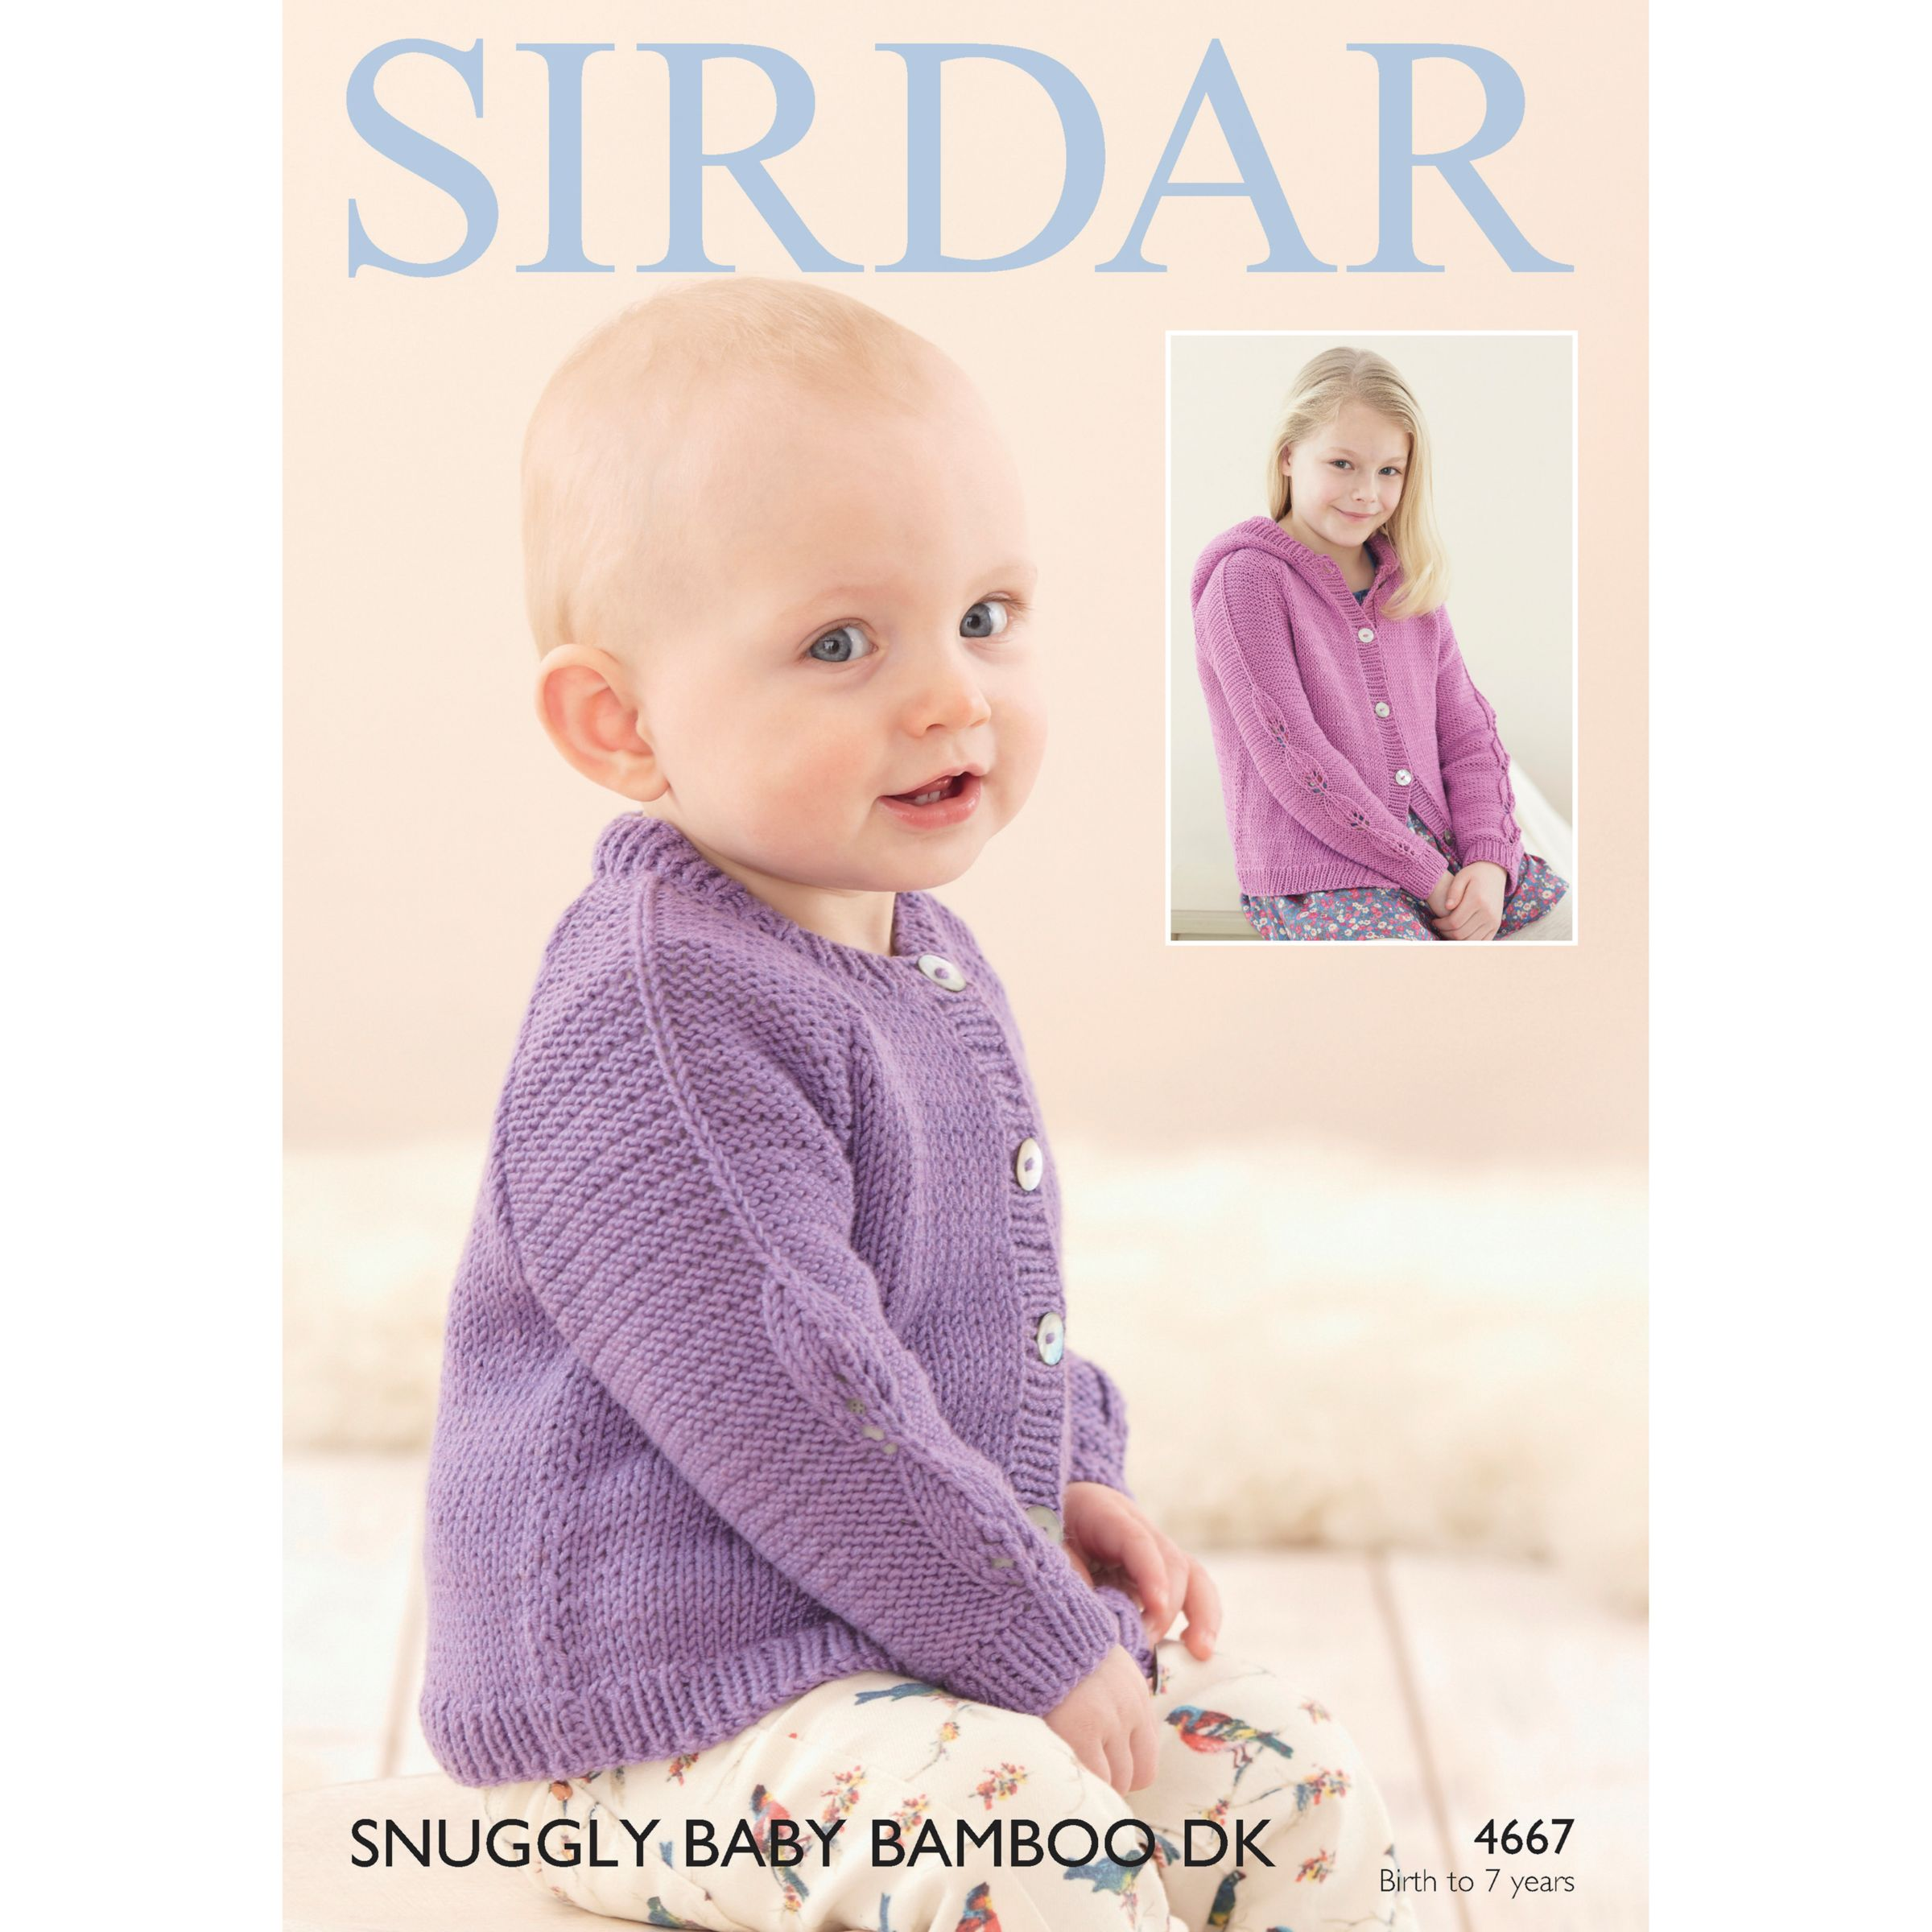 Sirdar snuggly baby bamboo dk cardigan knitting bluewater 300 bankloansurffo Image collections